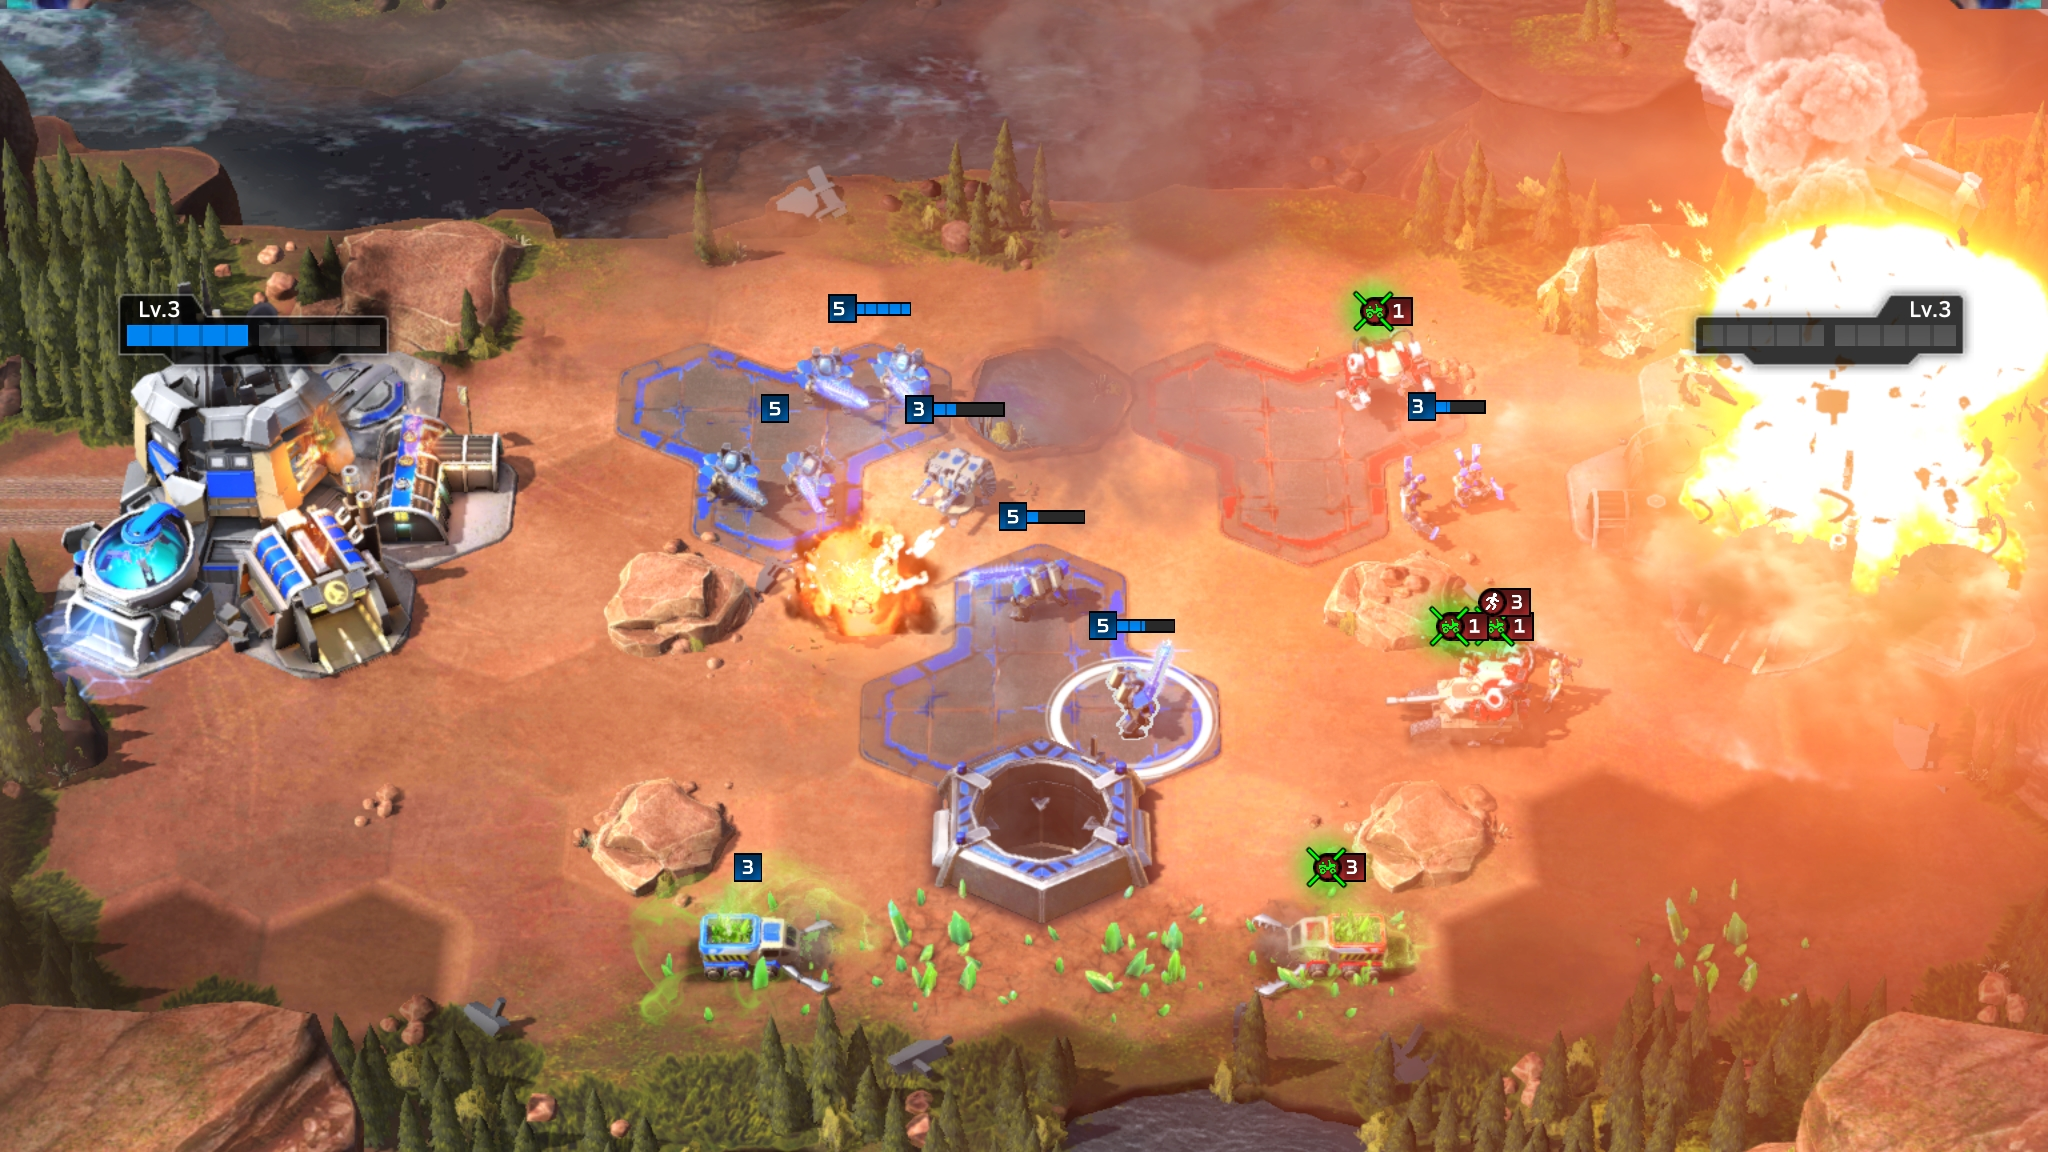 EA's Command & Conquer: Rivals mobile game isn't that bad